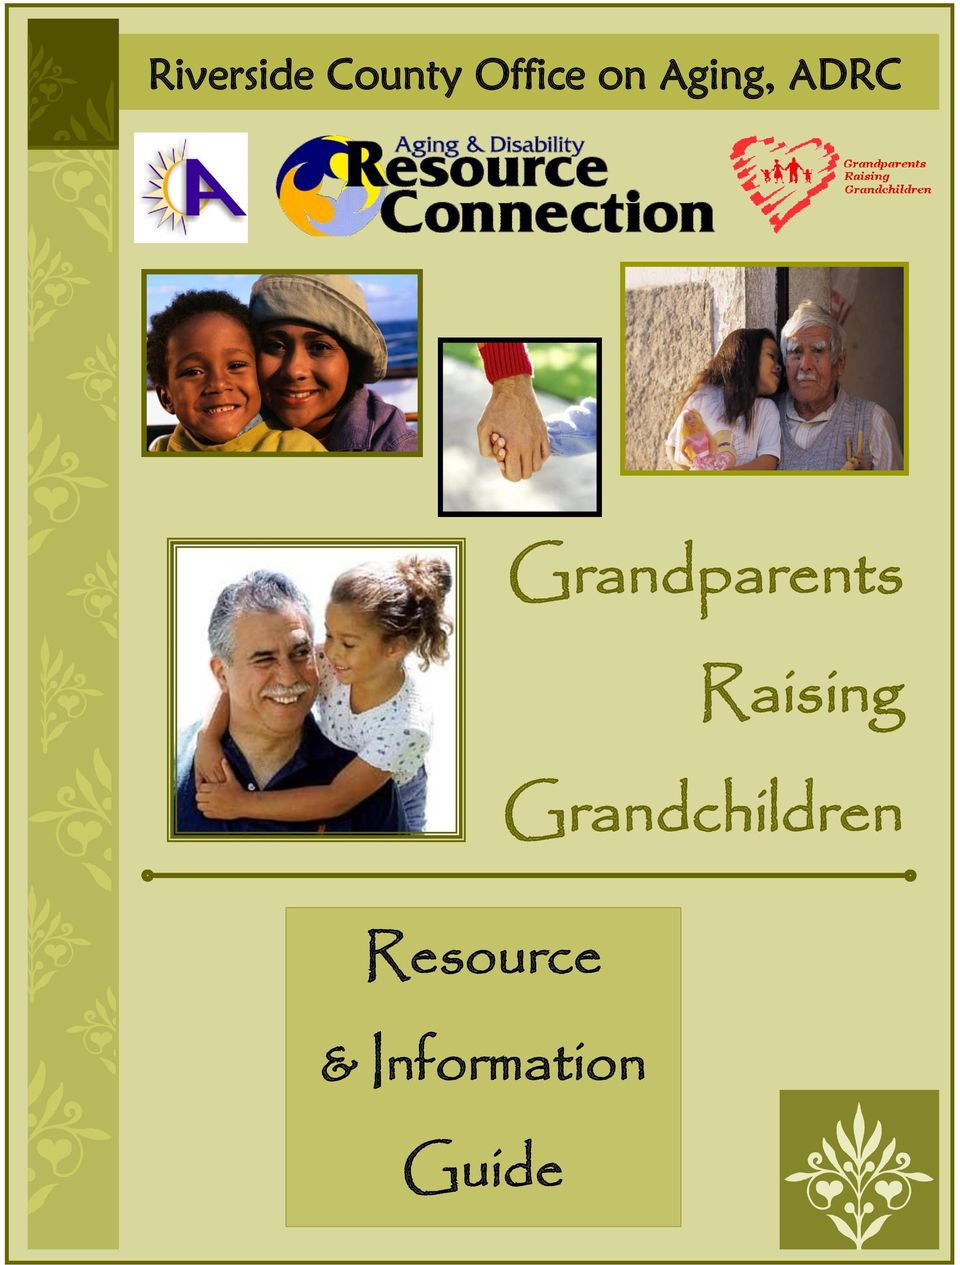 Grandparents Raising Grandchildren - PDF